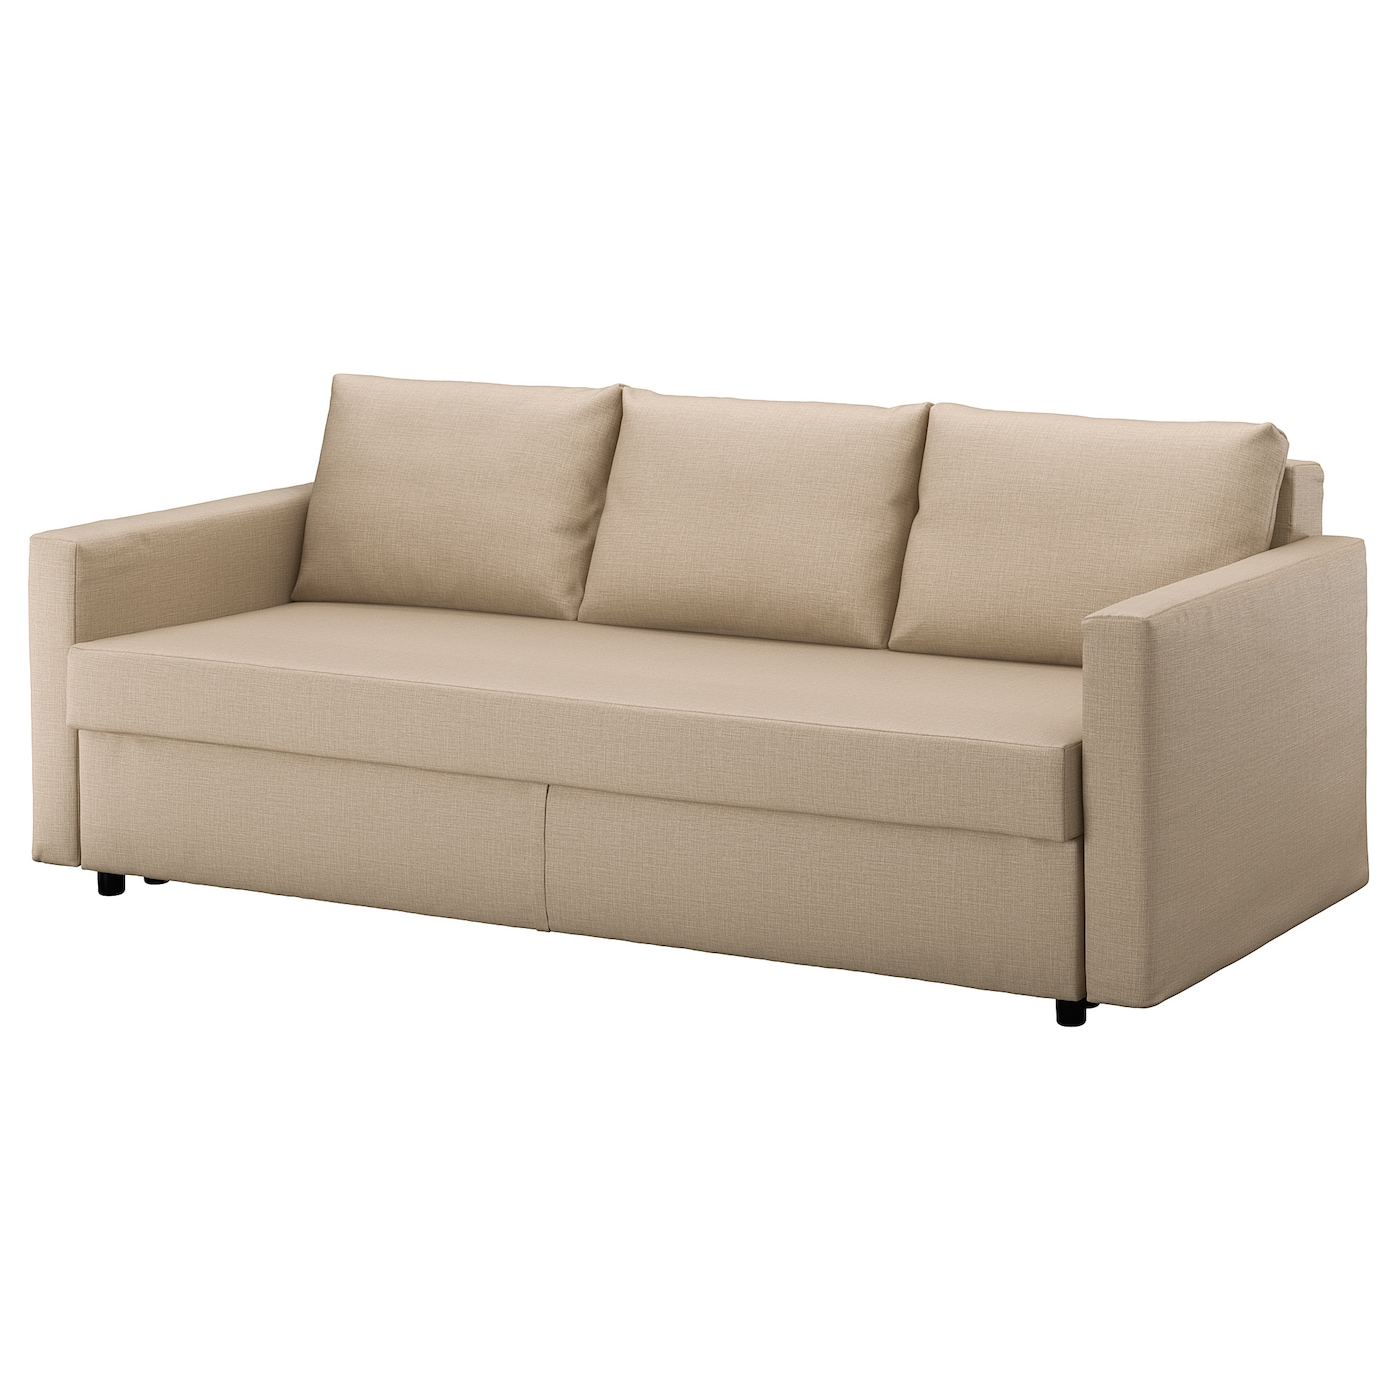 Friheten three seat sofa bed skiftebo beige ikea for Sofa bed 3 2